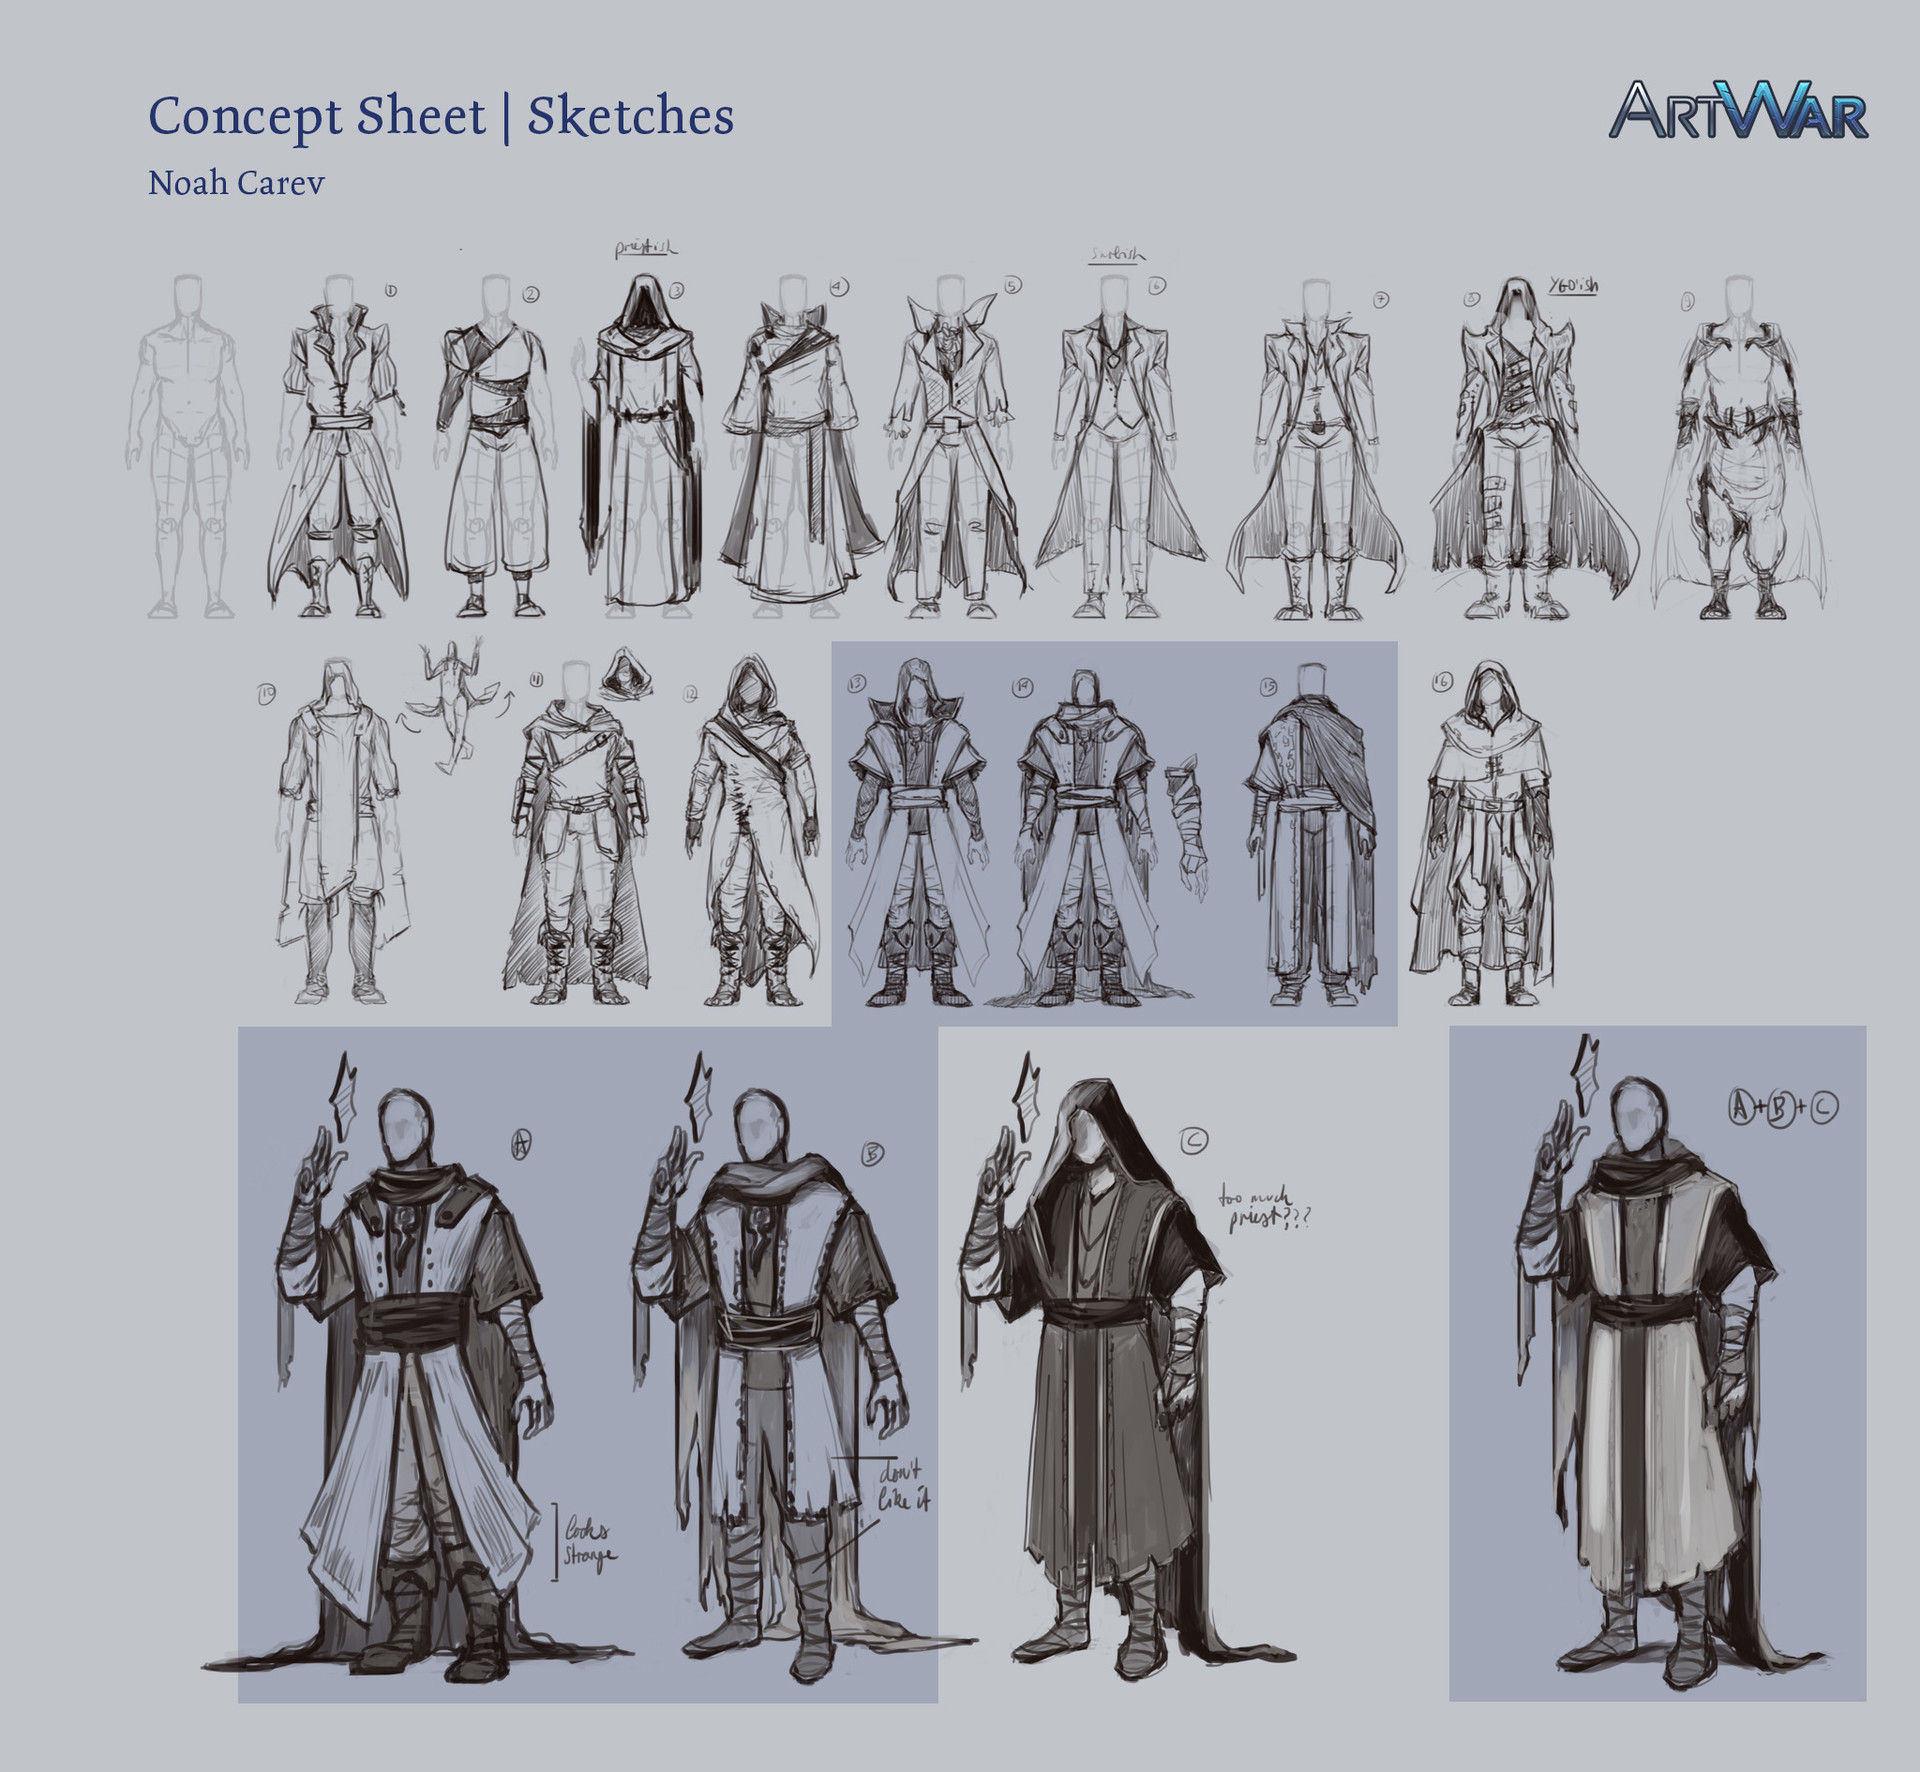 Noah carev artwar sketches frankenstejin noahcarev1